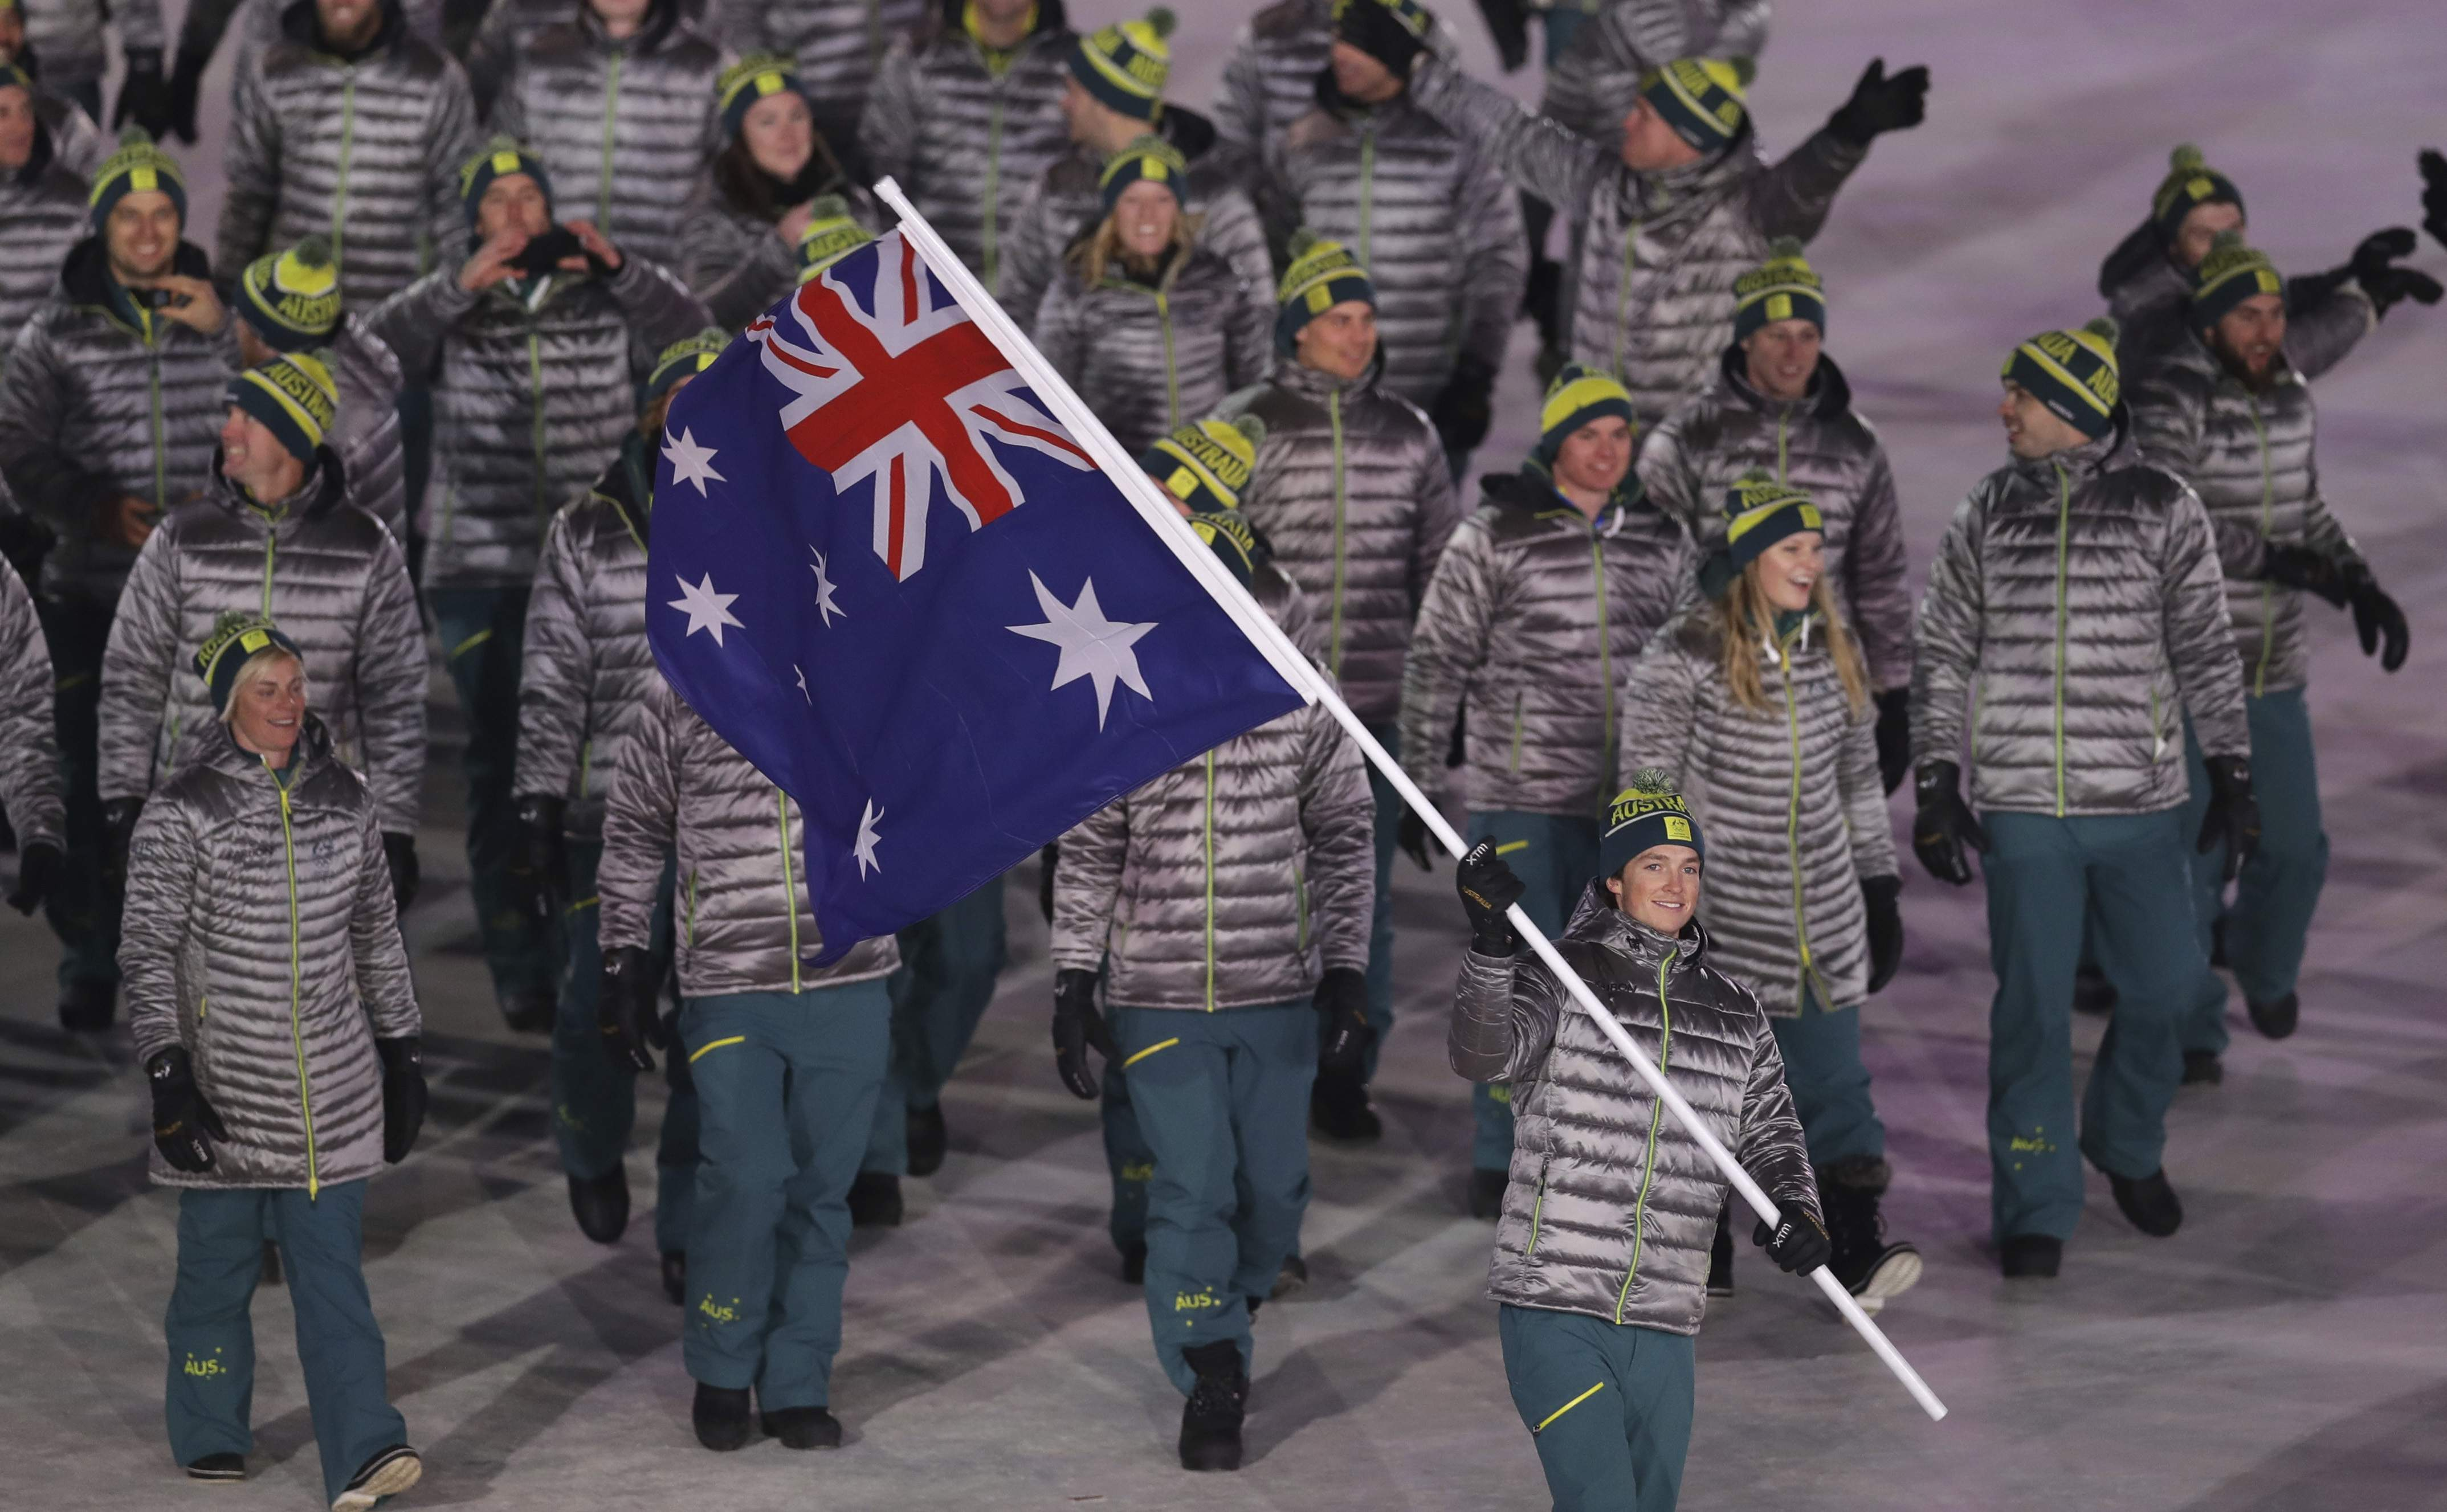 Scotty James carries the flag of Australia during the opening ceremony of the 2018 Winter Olympics in Pyeongchang, South Korea, Friday, Feb. 9, 2018. (AP Photo/Michael Sohn)